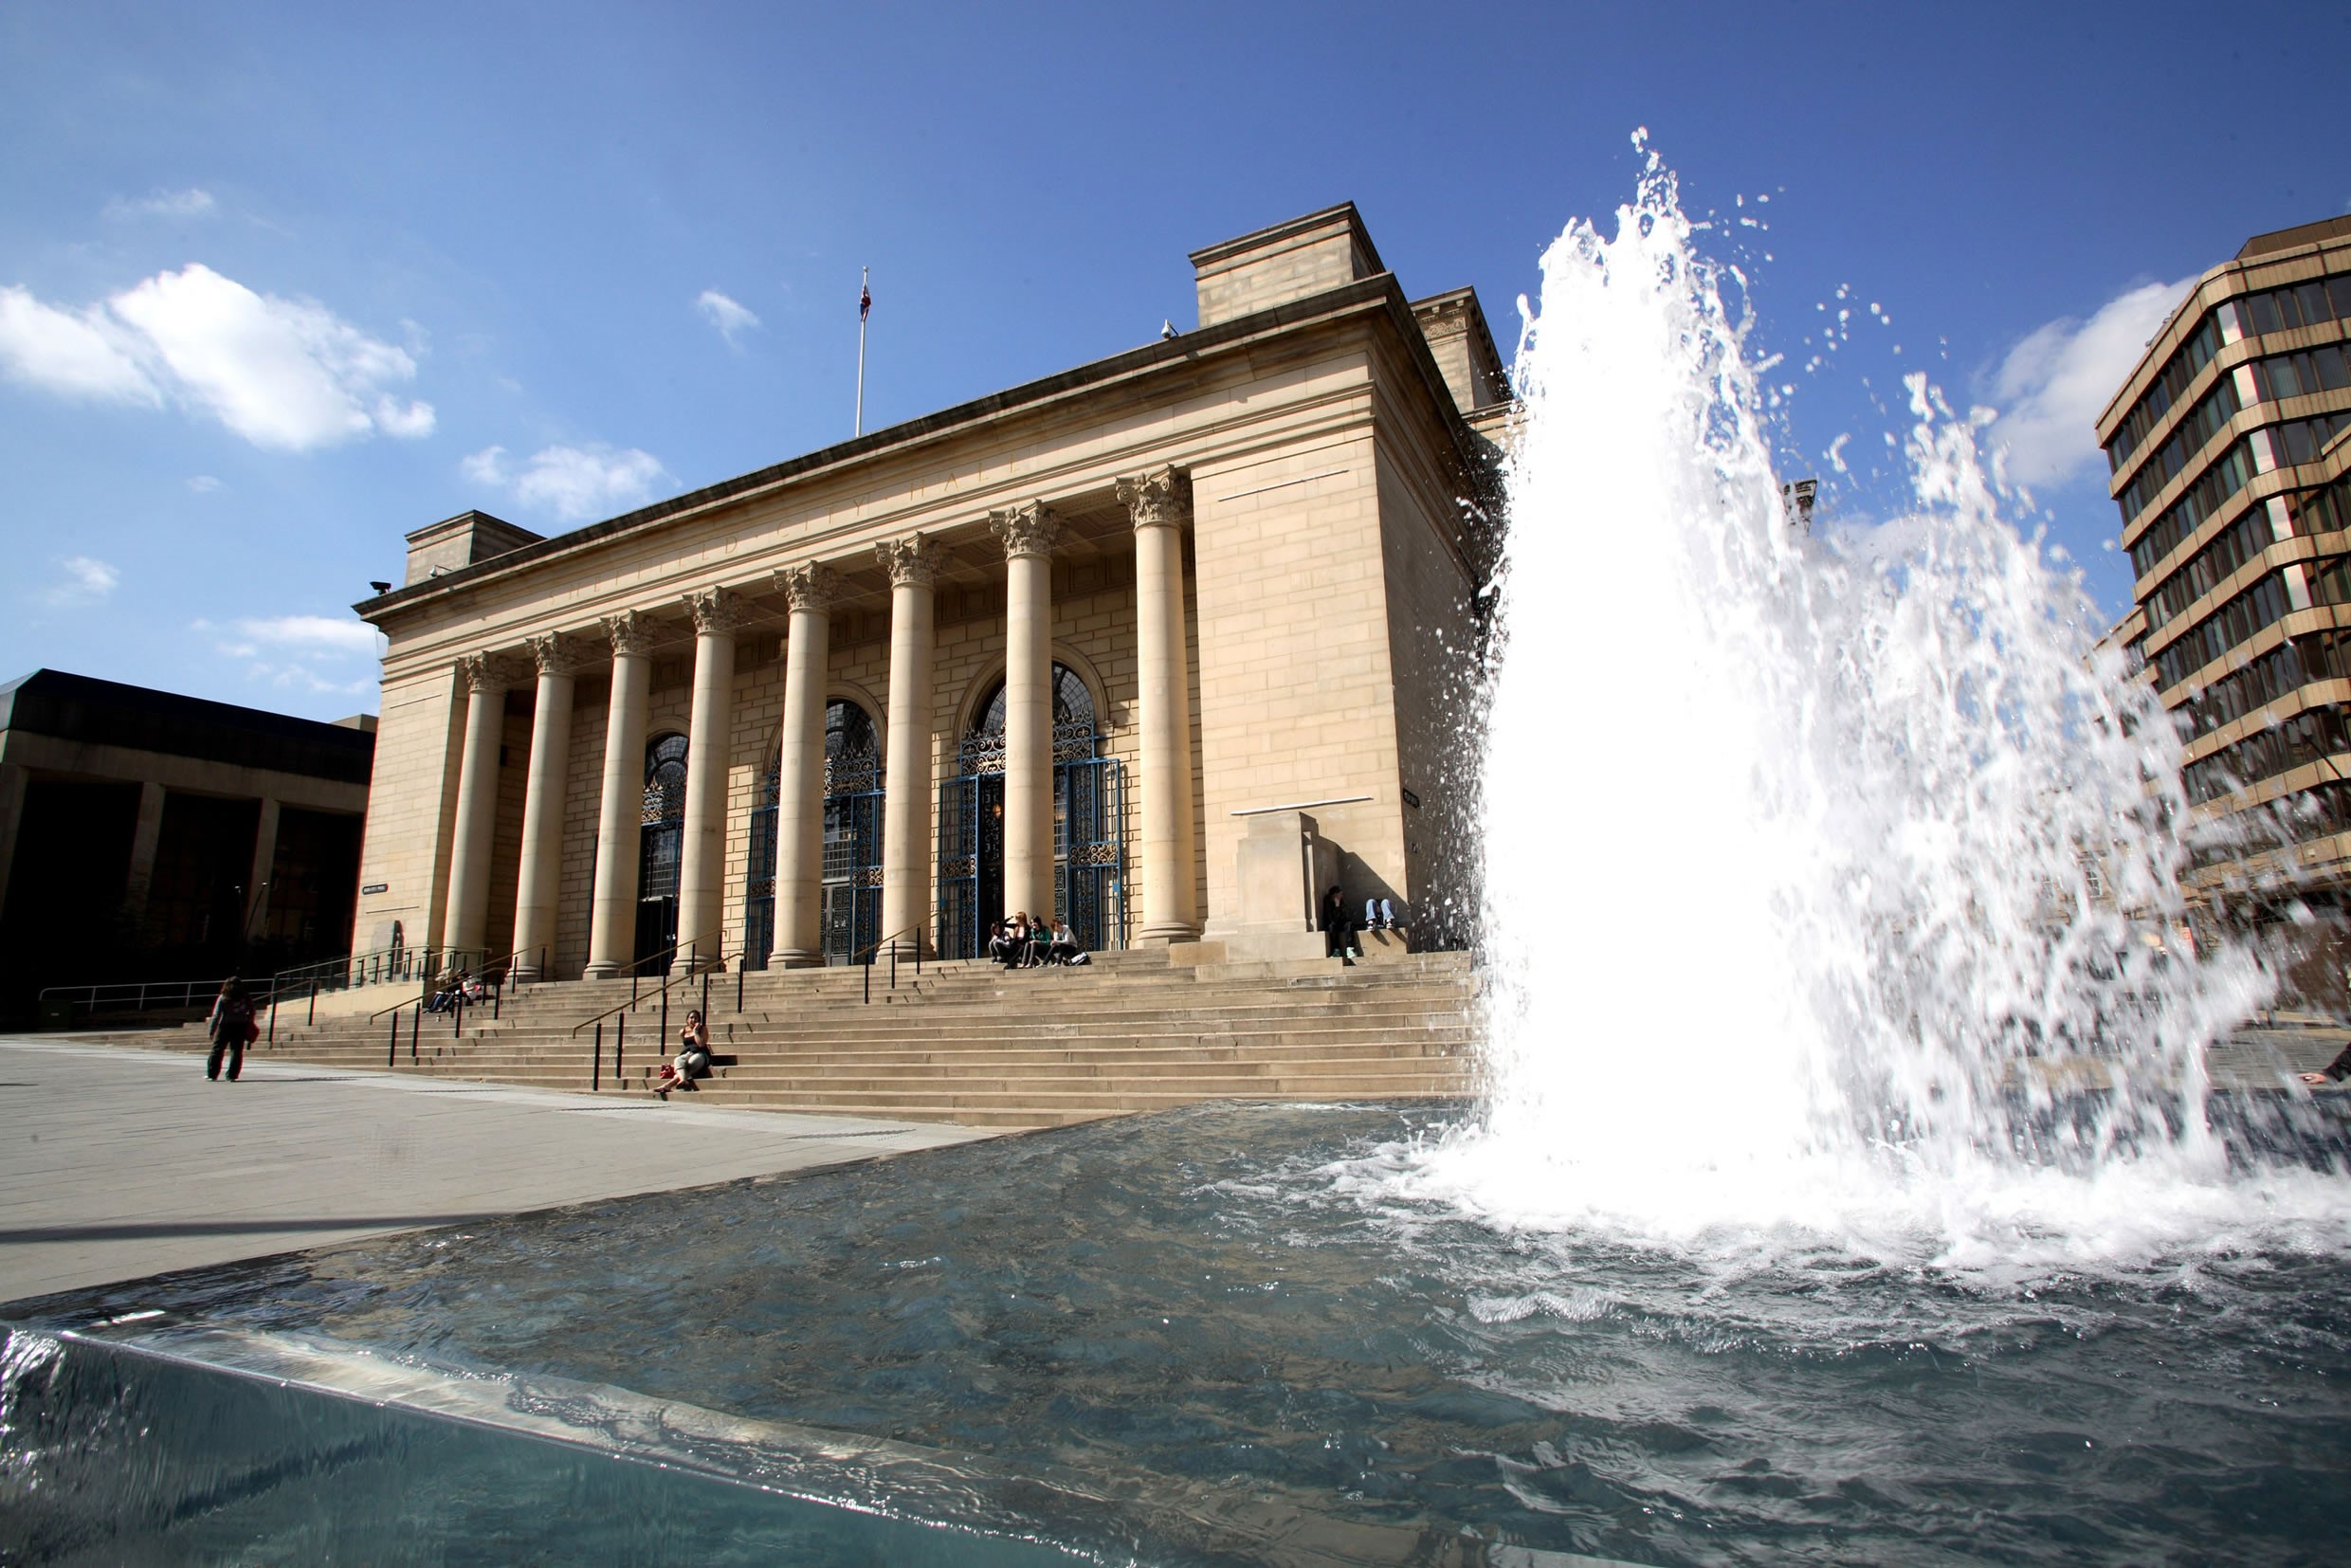 Sheffield City Hall and fountain